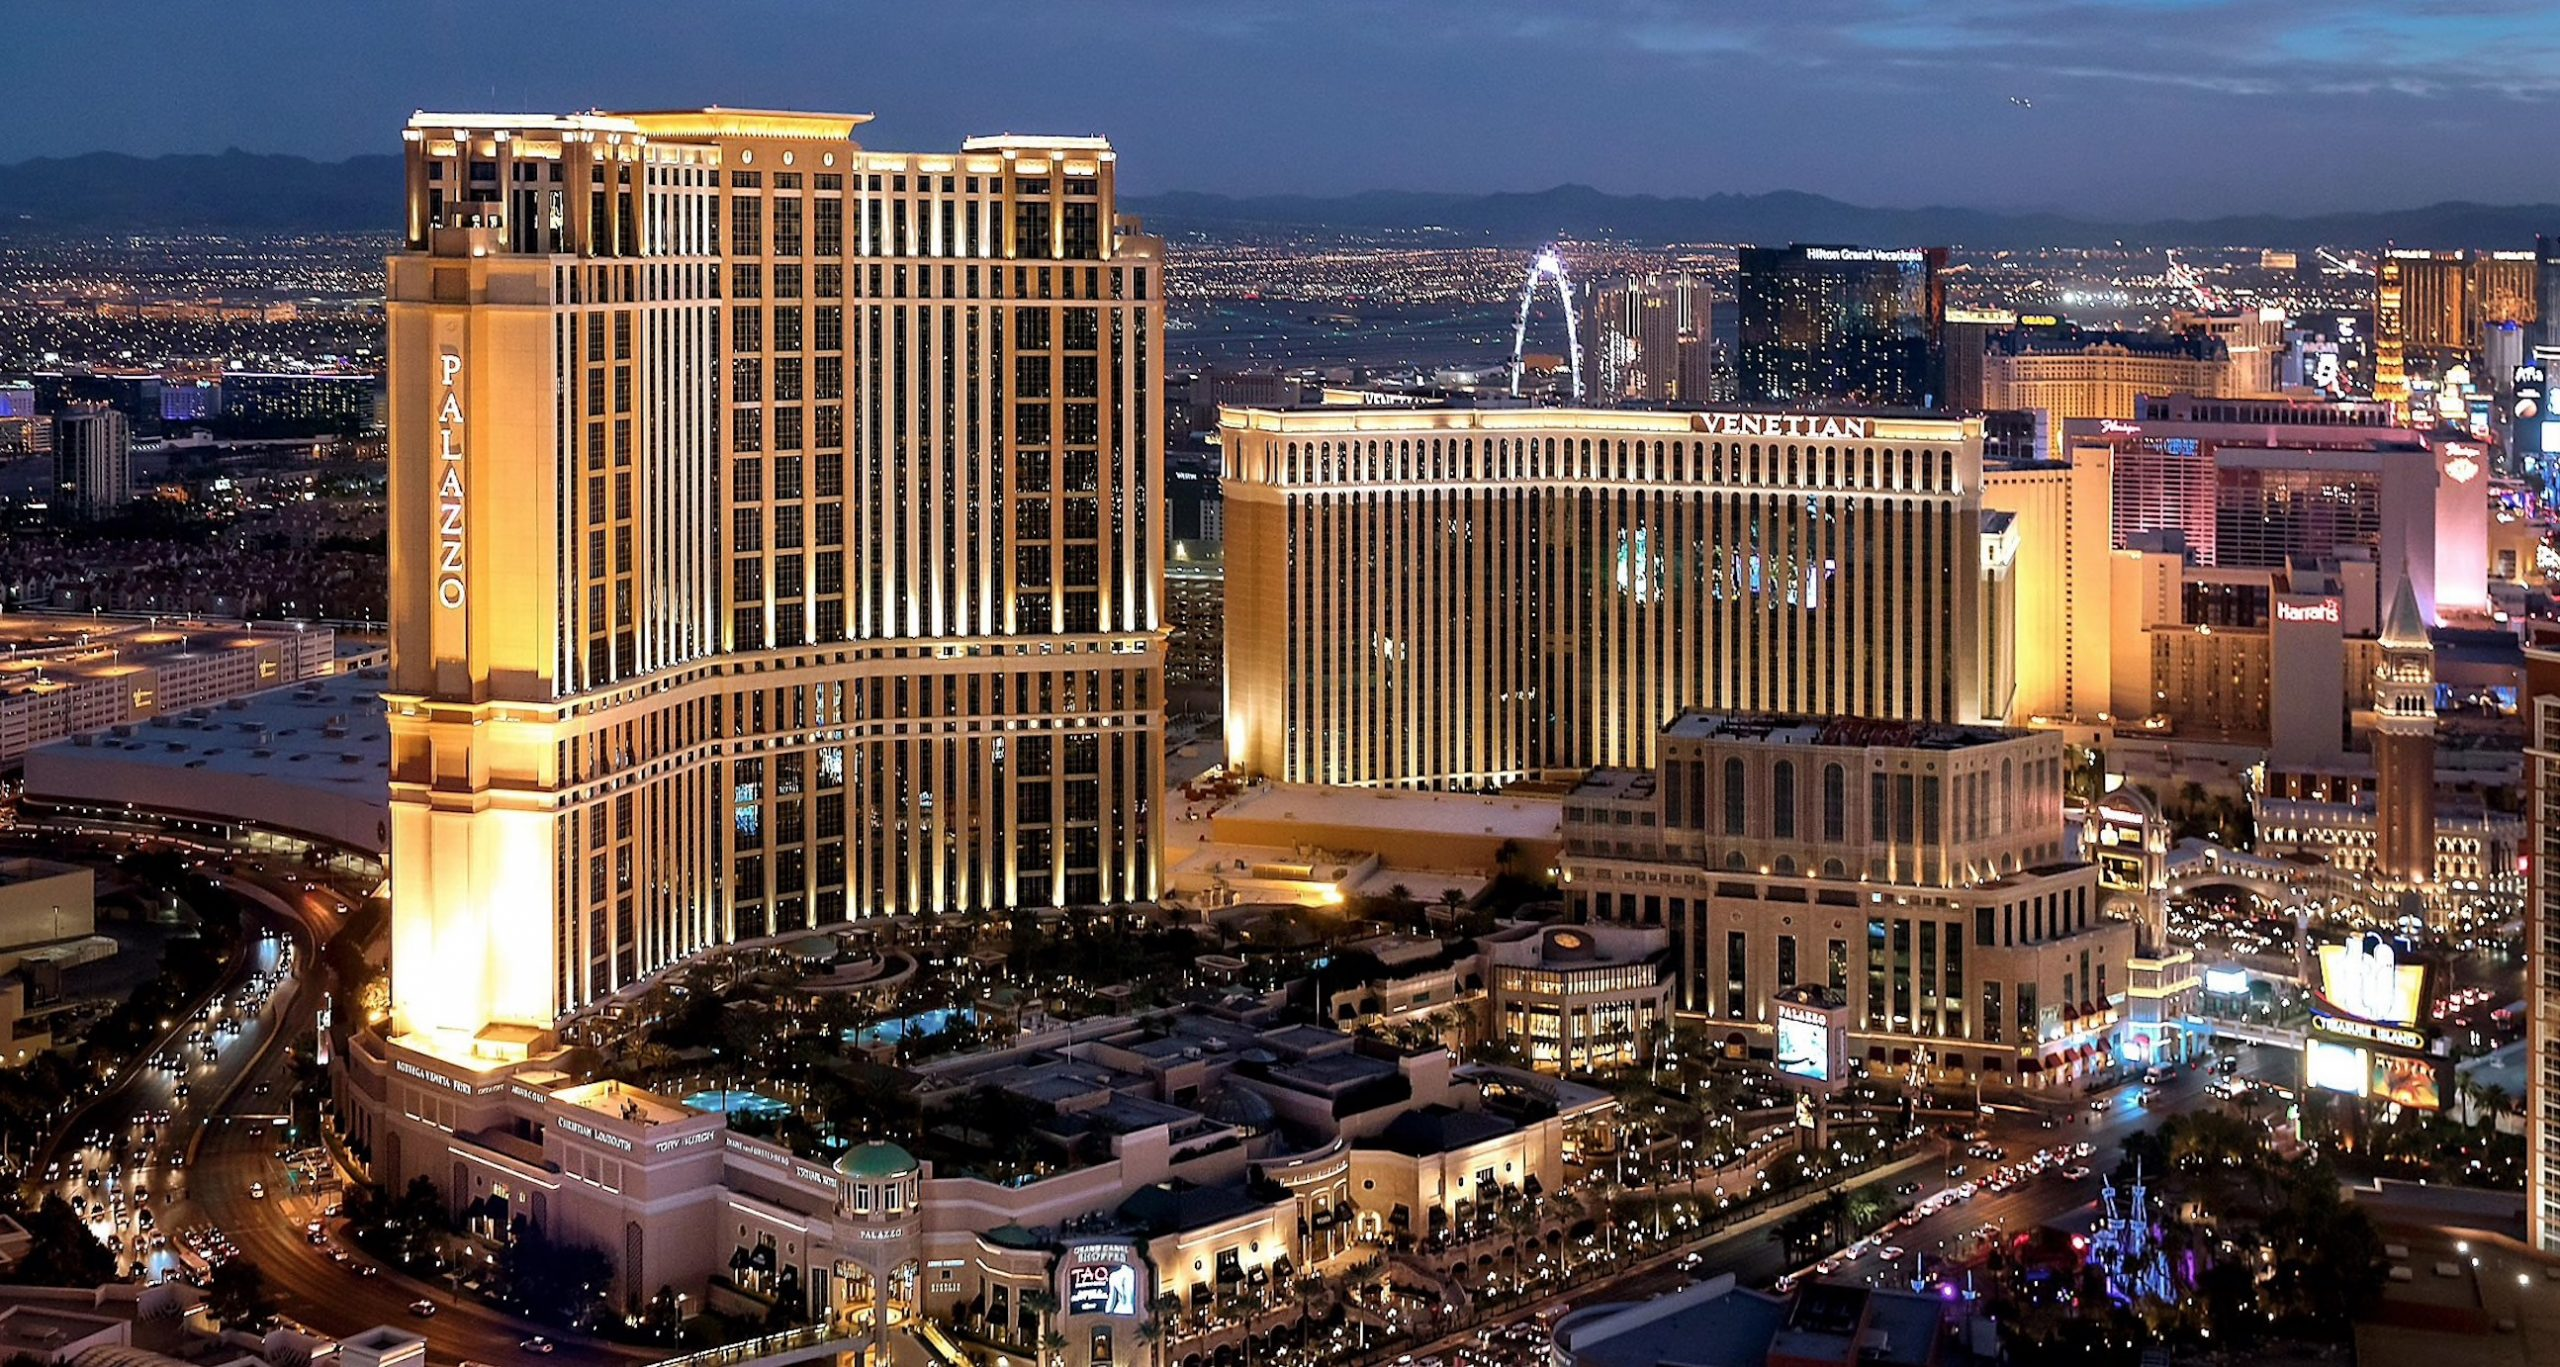 Las Vegas Sands Continues Recovery Efforts Amid Q3 Declines